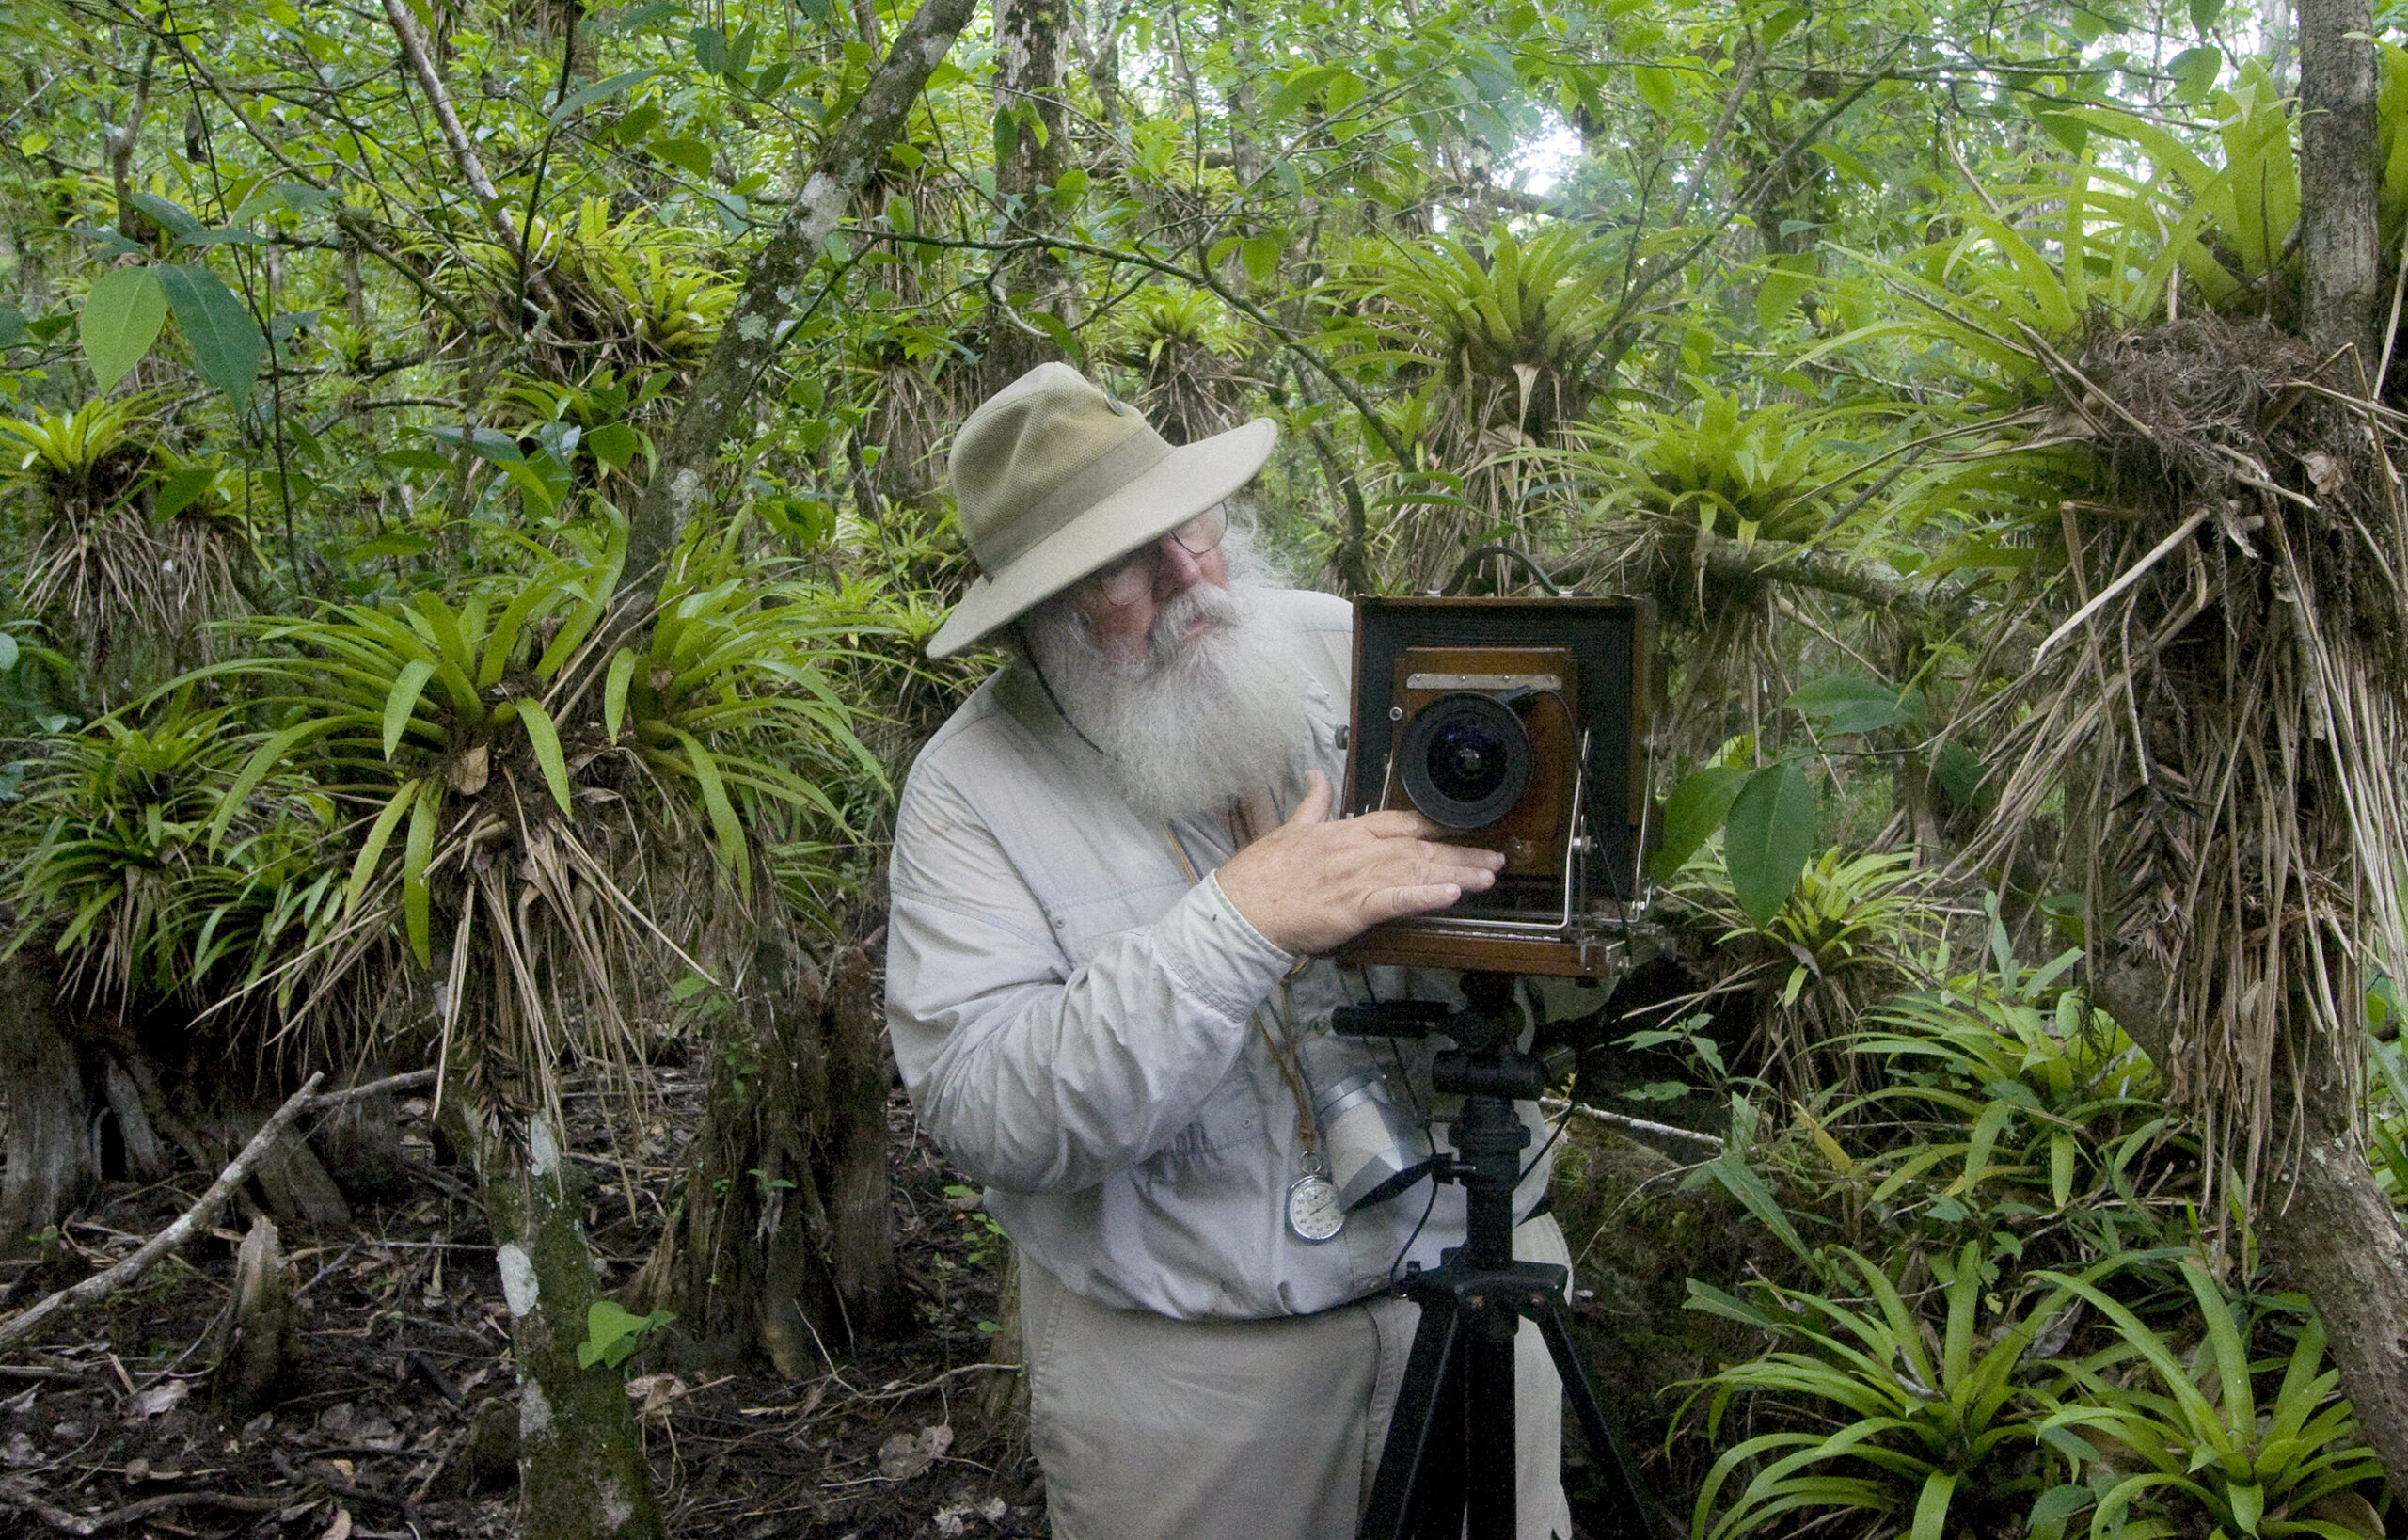 Color image of photographer Clyde Butcher inspecting his camera surrounded by lush green tropical foliage. Clyde Butcher is wearing a wide brimmed hat, glasses, and has a full fluffy white beard and mustache.